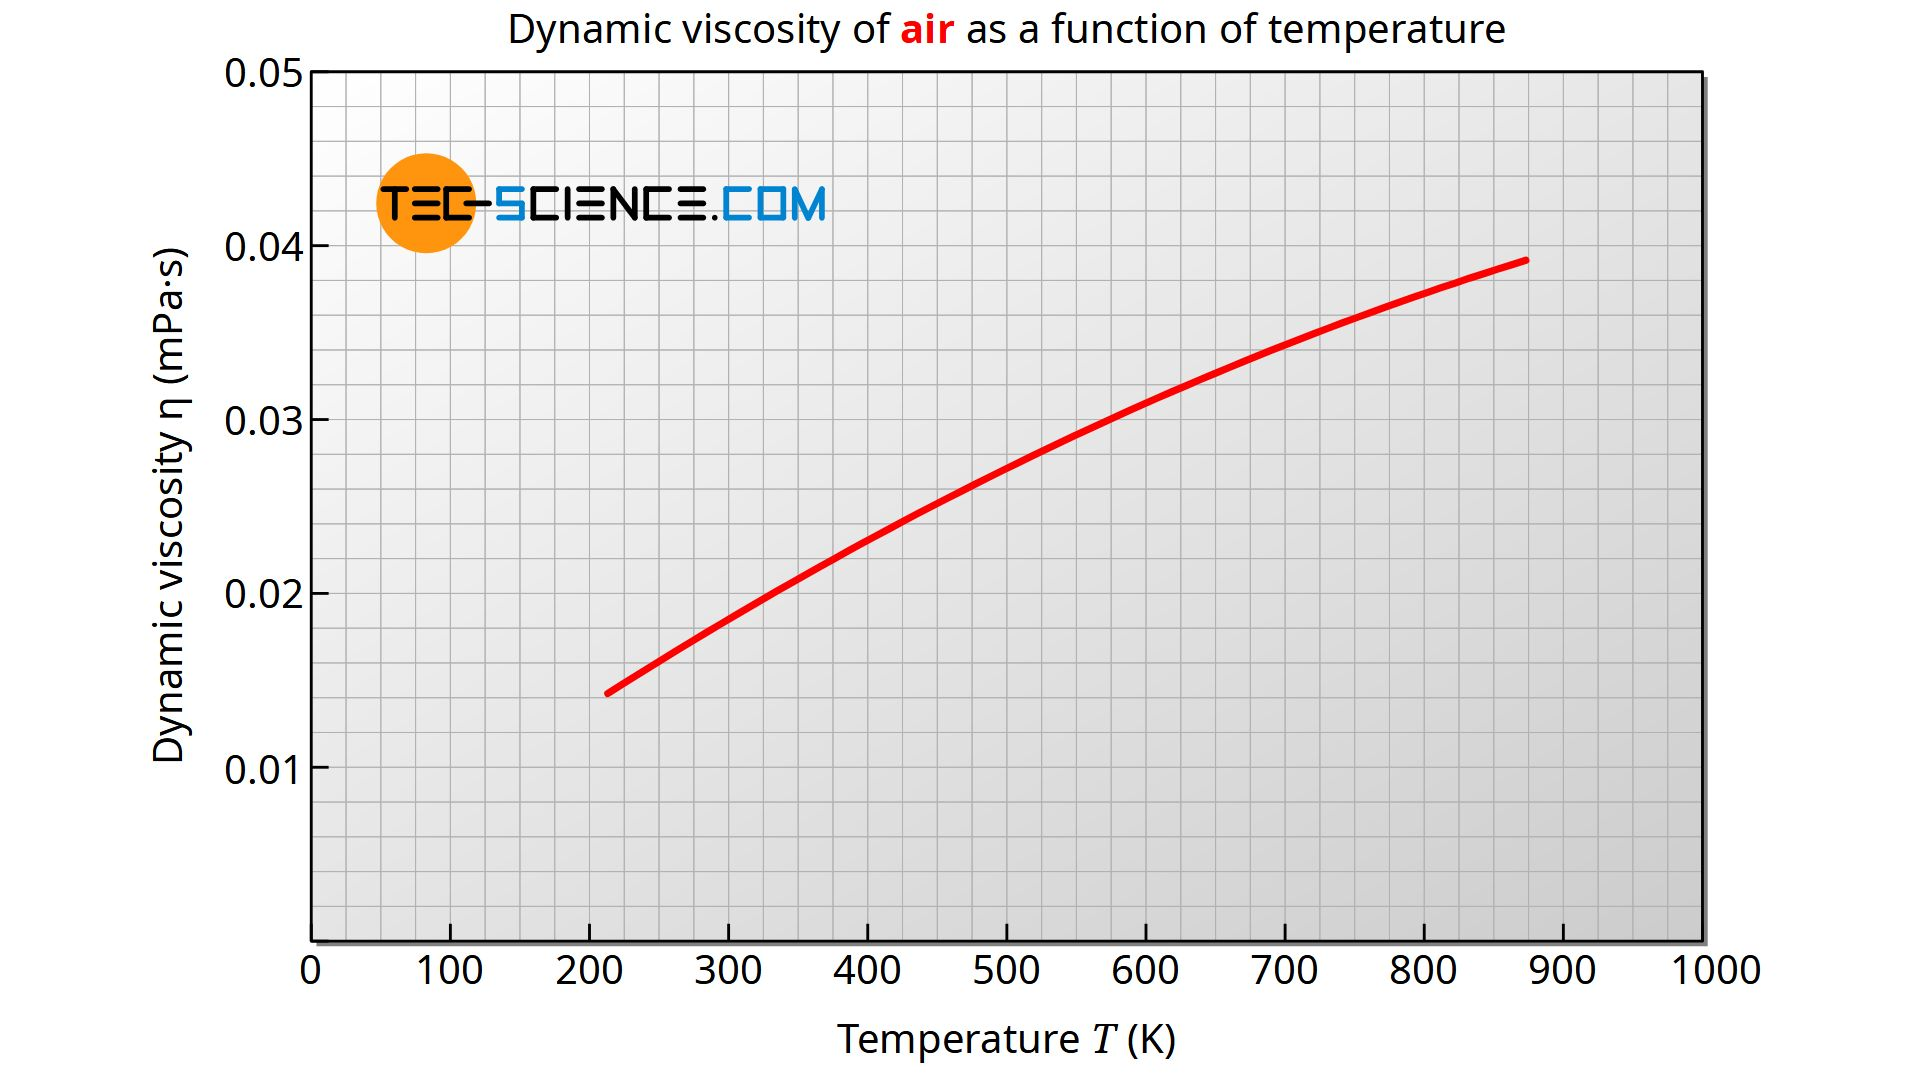 Dynamic viscosity of air as a function of temperature